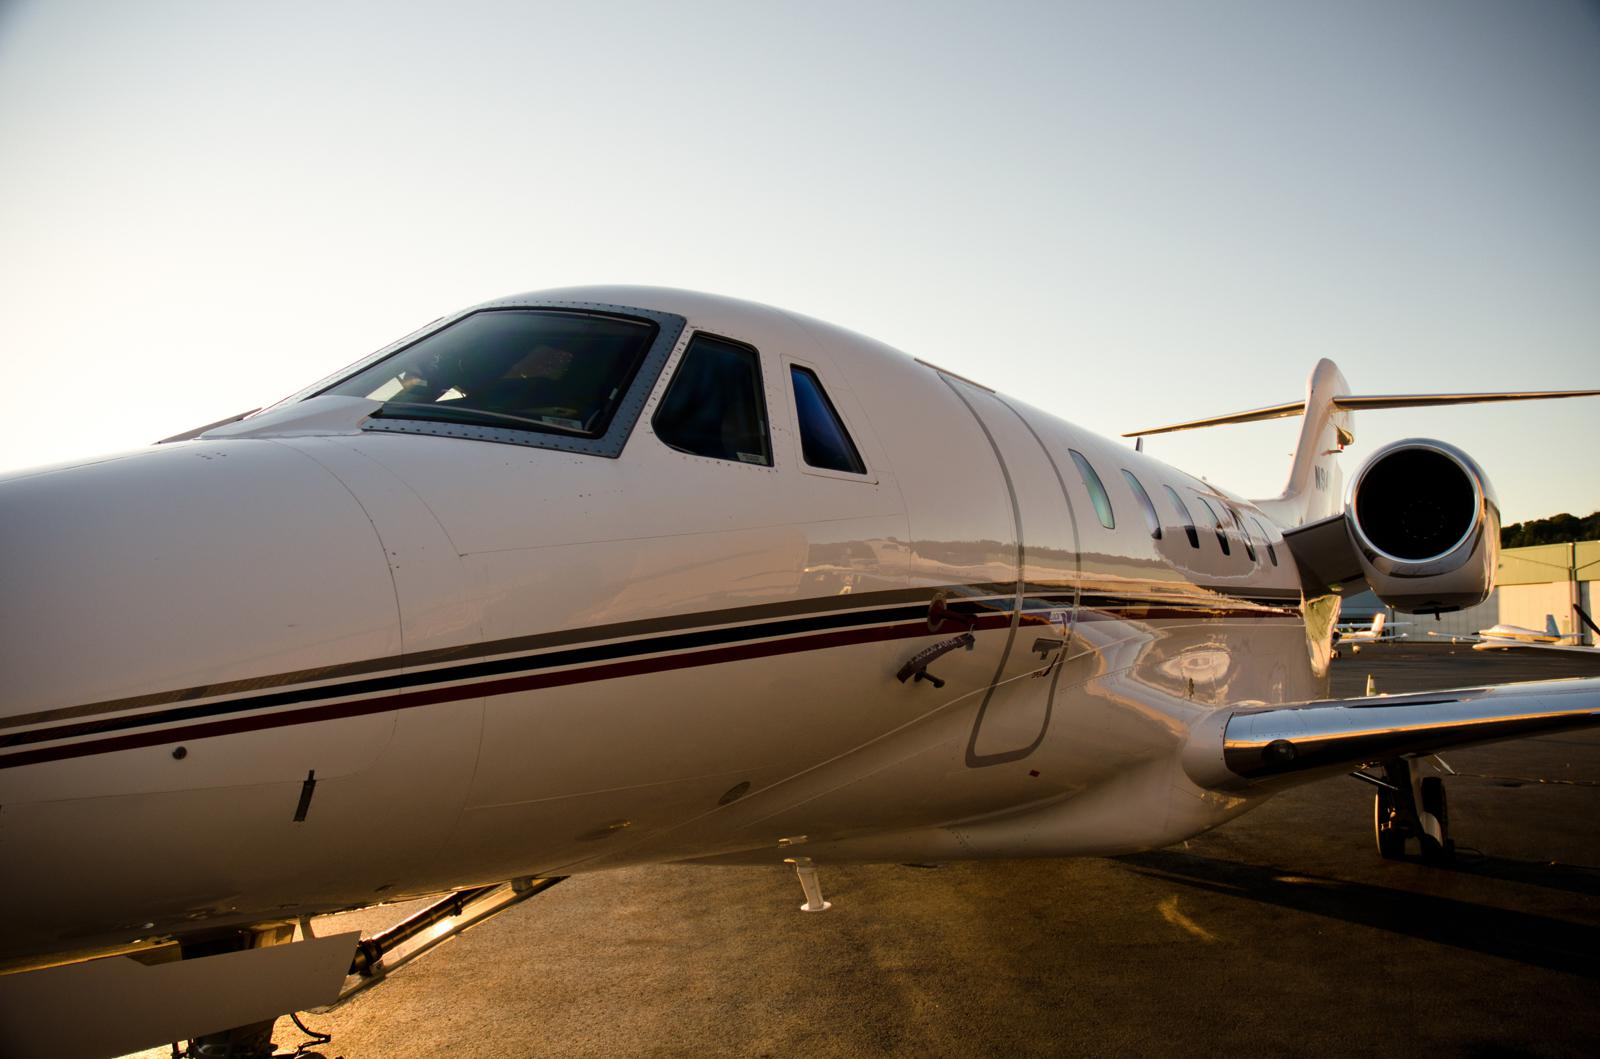 A Private Jet Journey from South Africa to the Seychelles